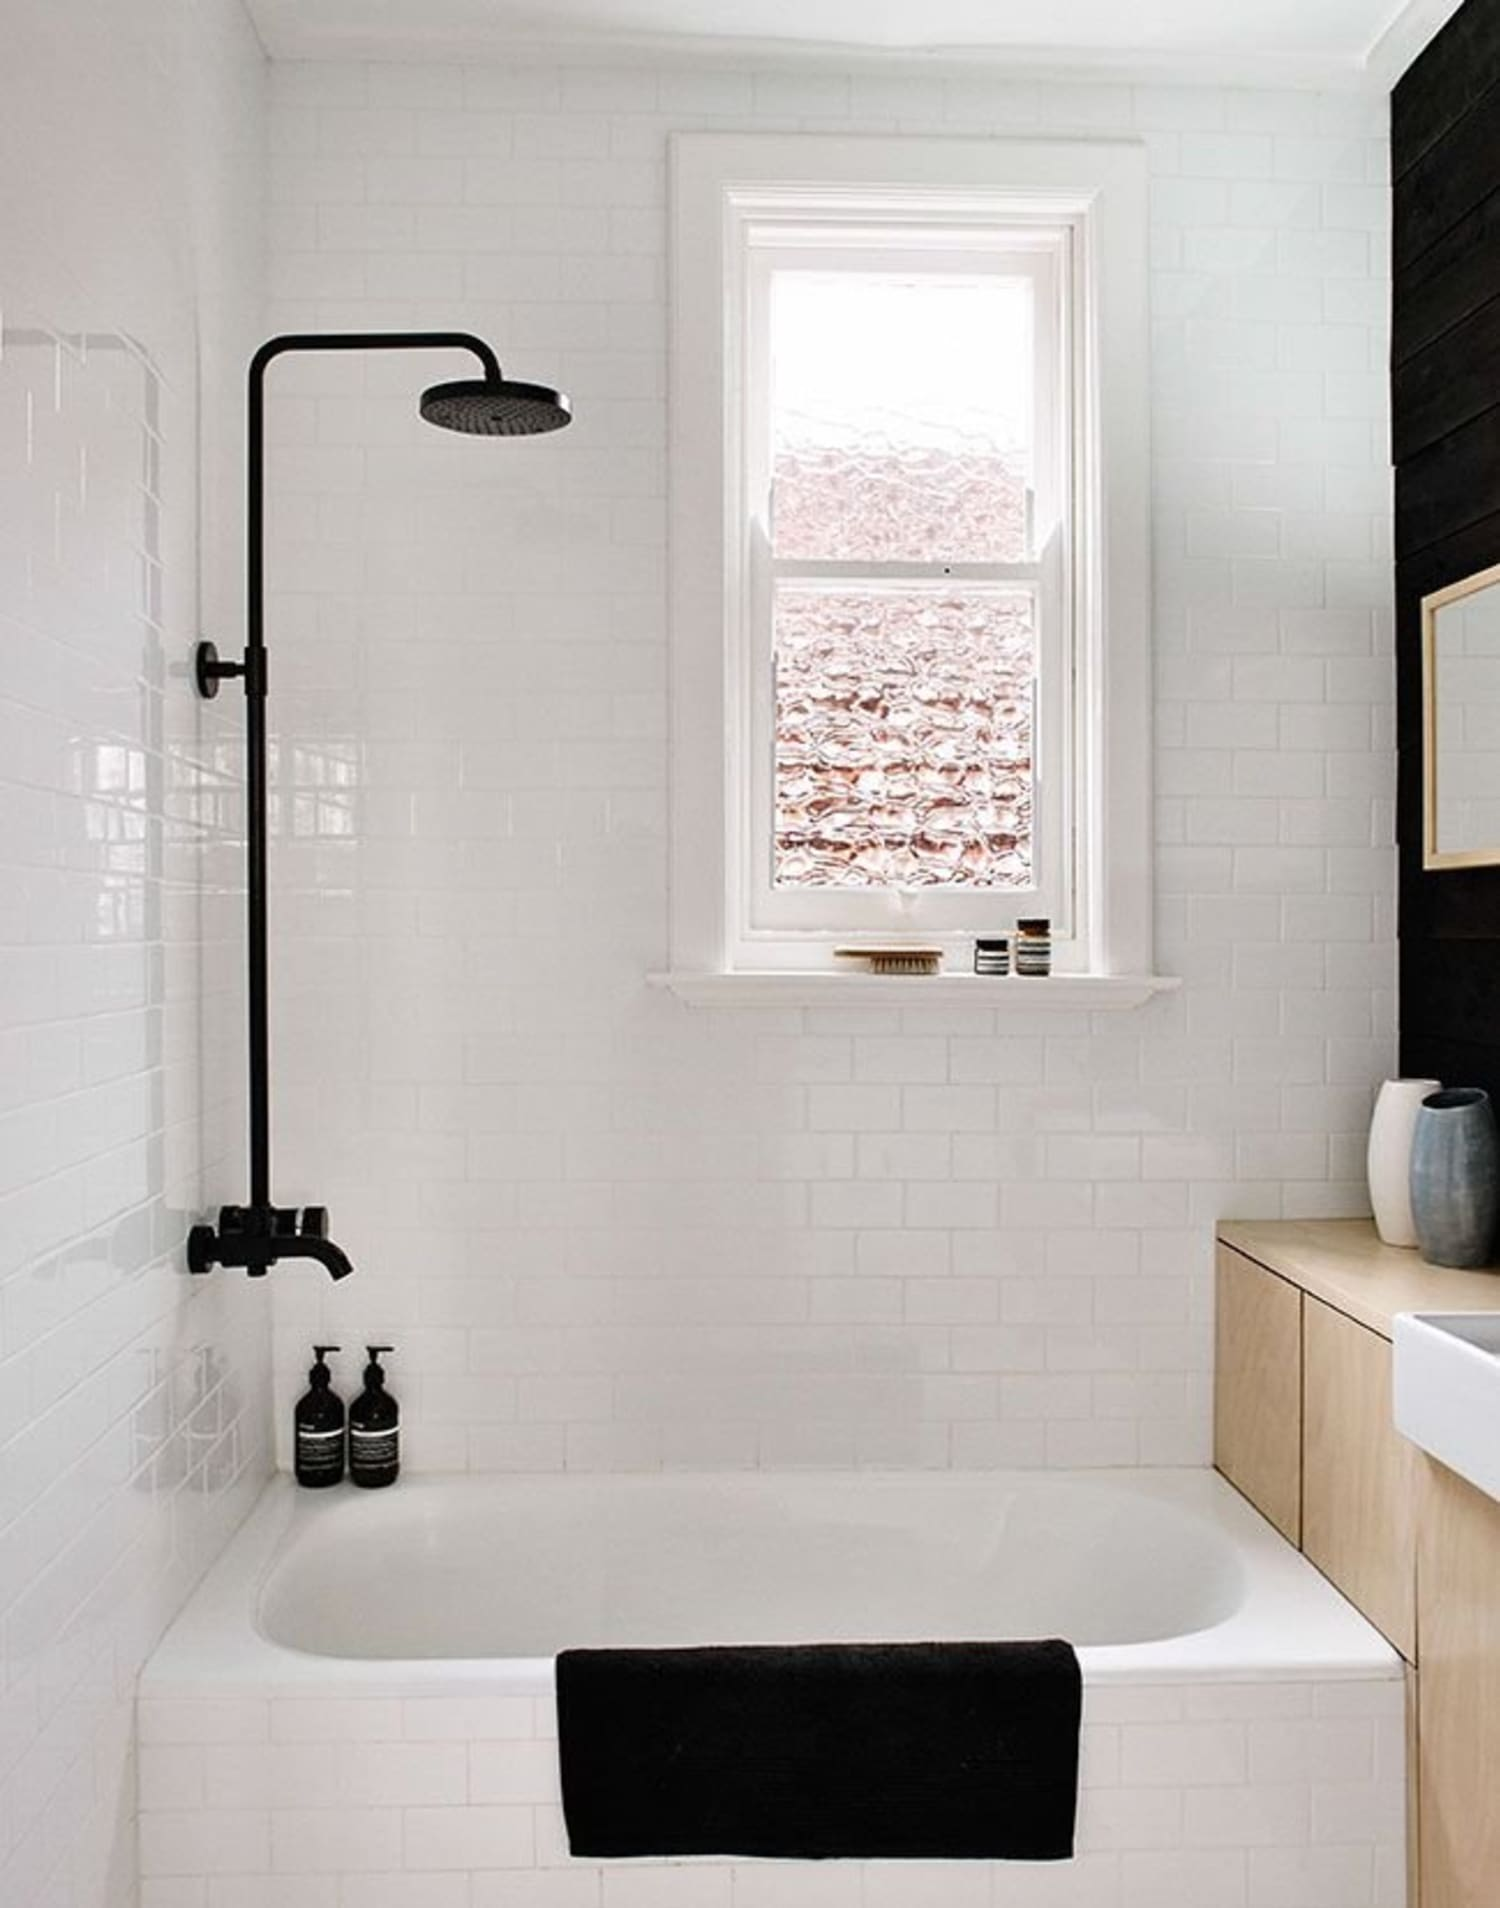 7 Small Bathroom Remodel Ideas Renovation Pictures Of